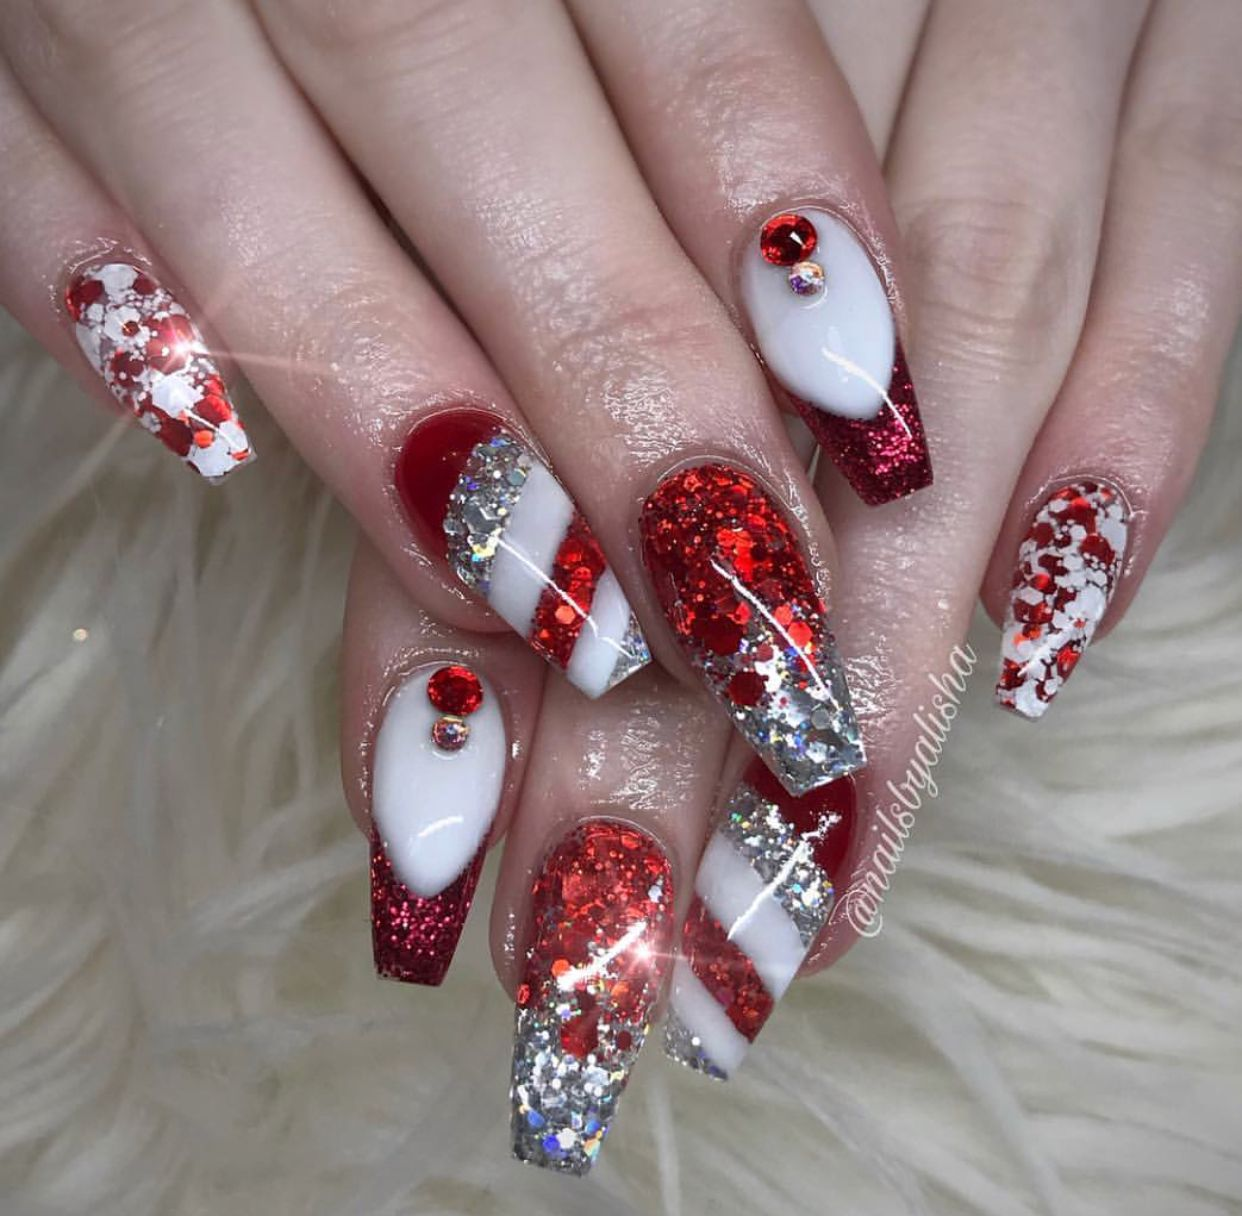 Custom Christmas coffin nails